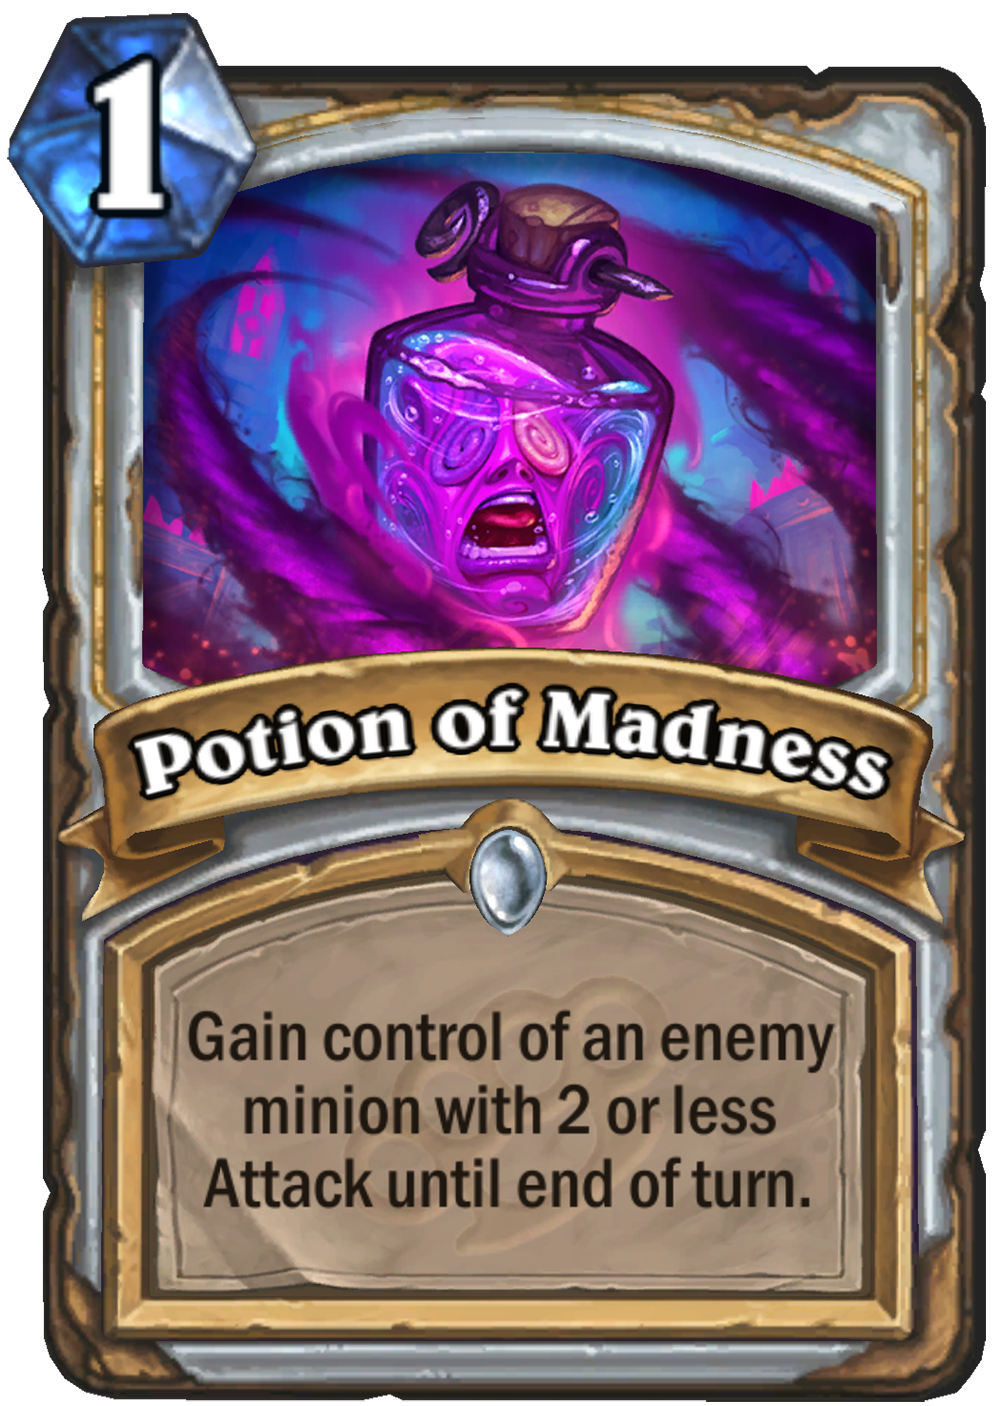 This image depicts the Hearthstone: Mean Streets of Gadgetzan card Potion of Madness. In the card art, a purple-and-blue potion bottle floats in a purple haze of tendrils. Within the bottle, a crazed face is depicted, mouth open as though screaming. The c